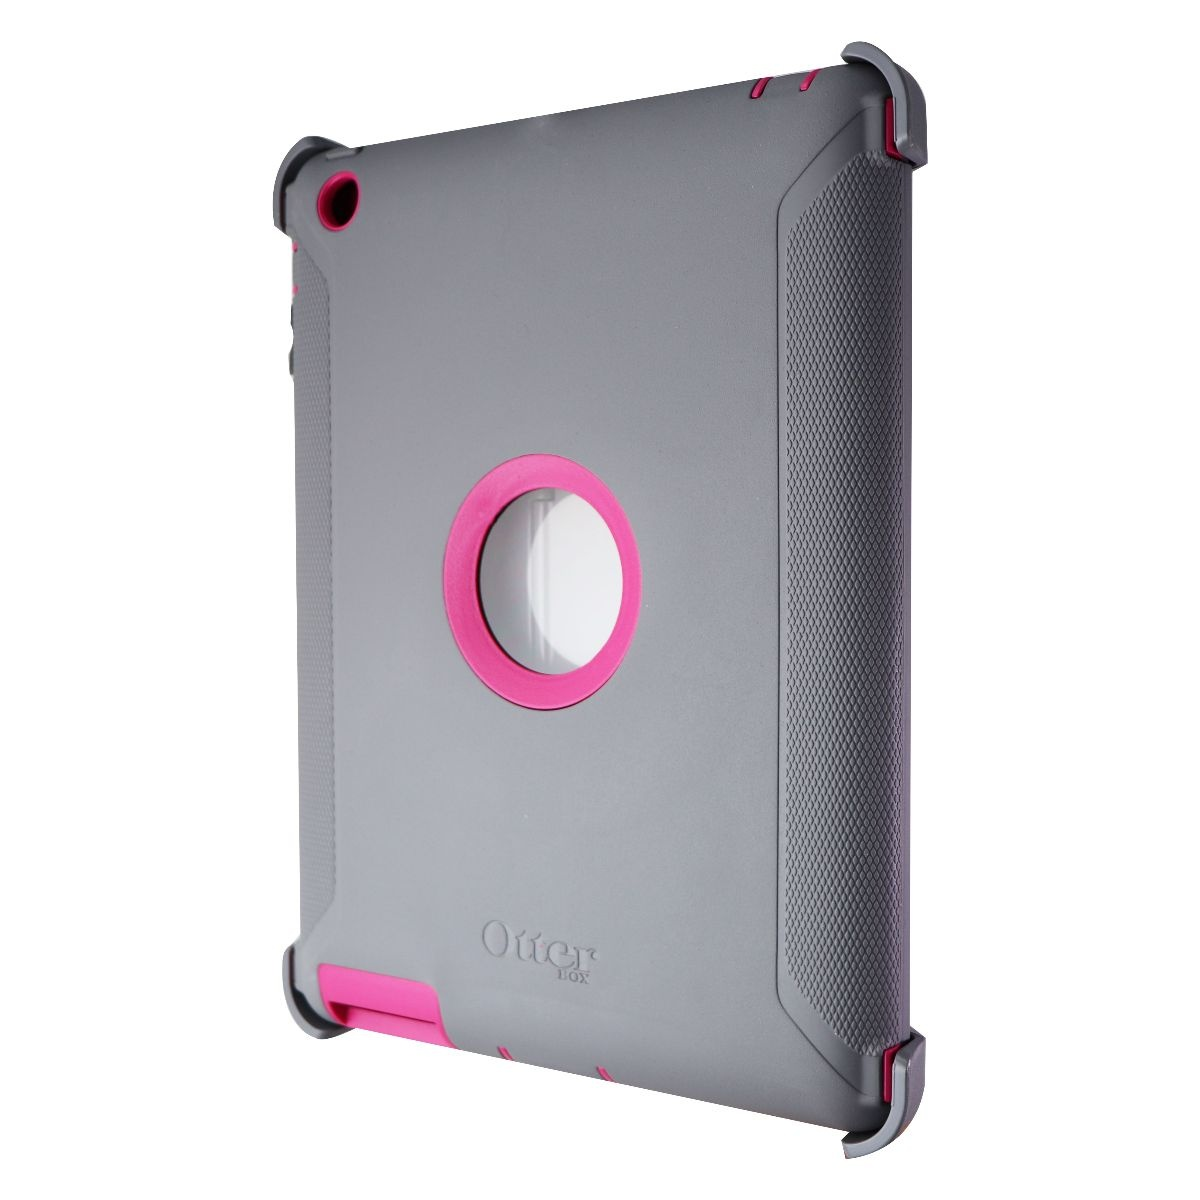 OtterBox Defender Series Case for Apple iPad 2 / 3 and 4 - Alpenglow (Gray/Pink)